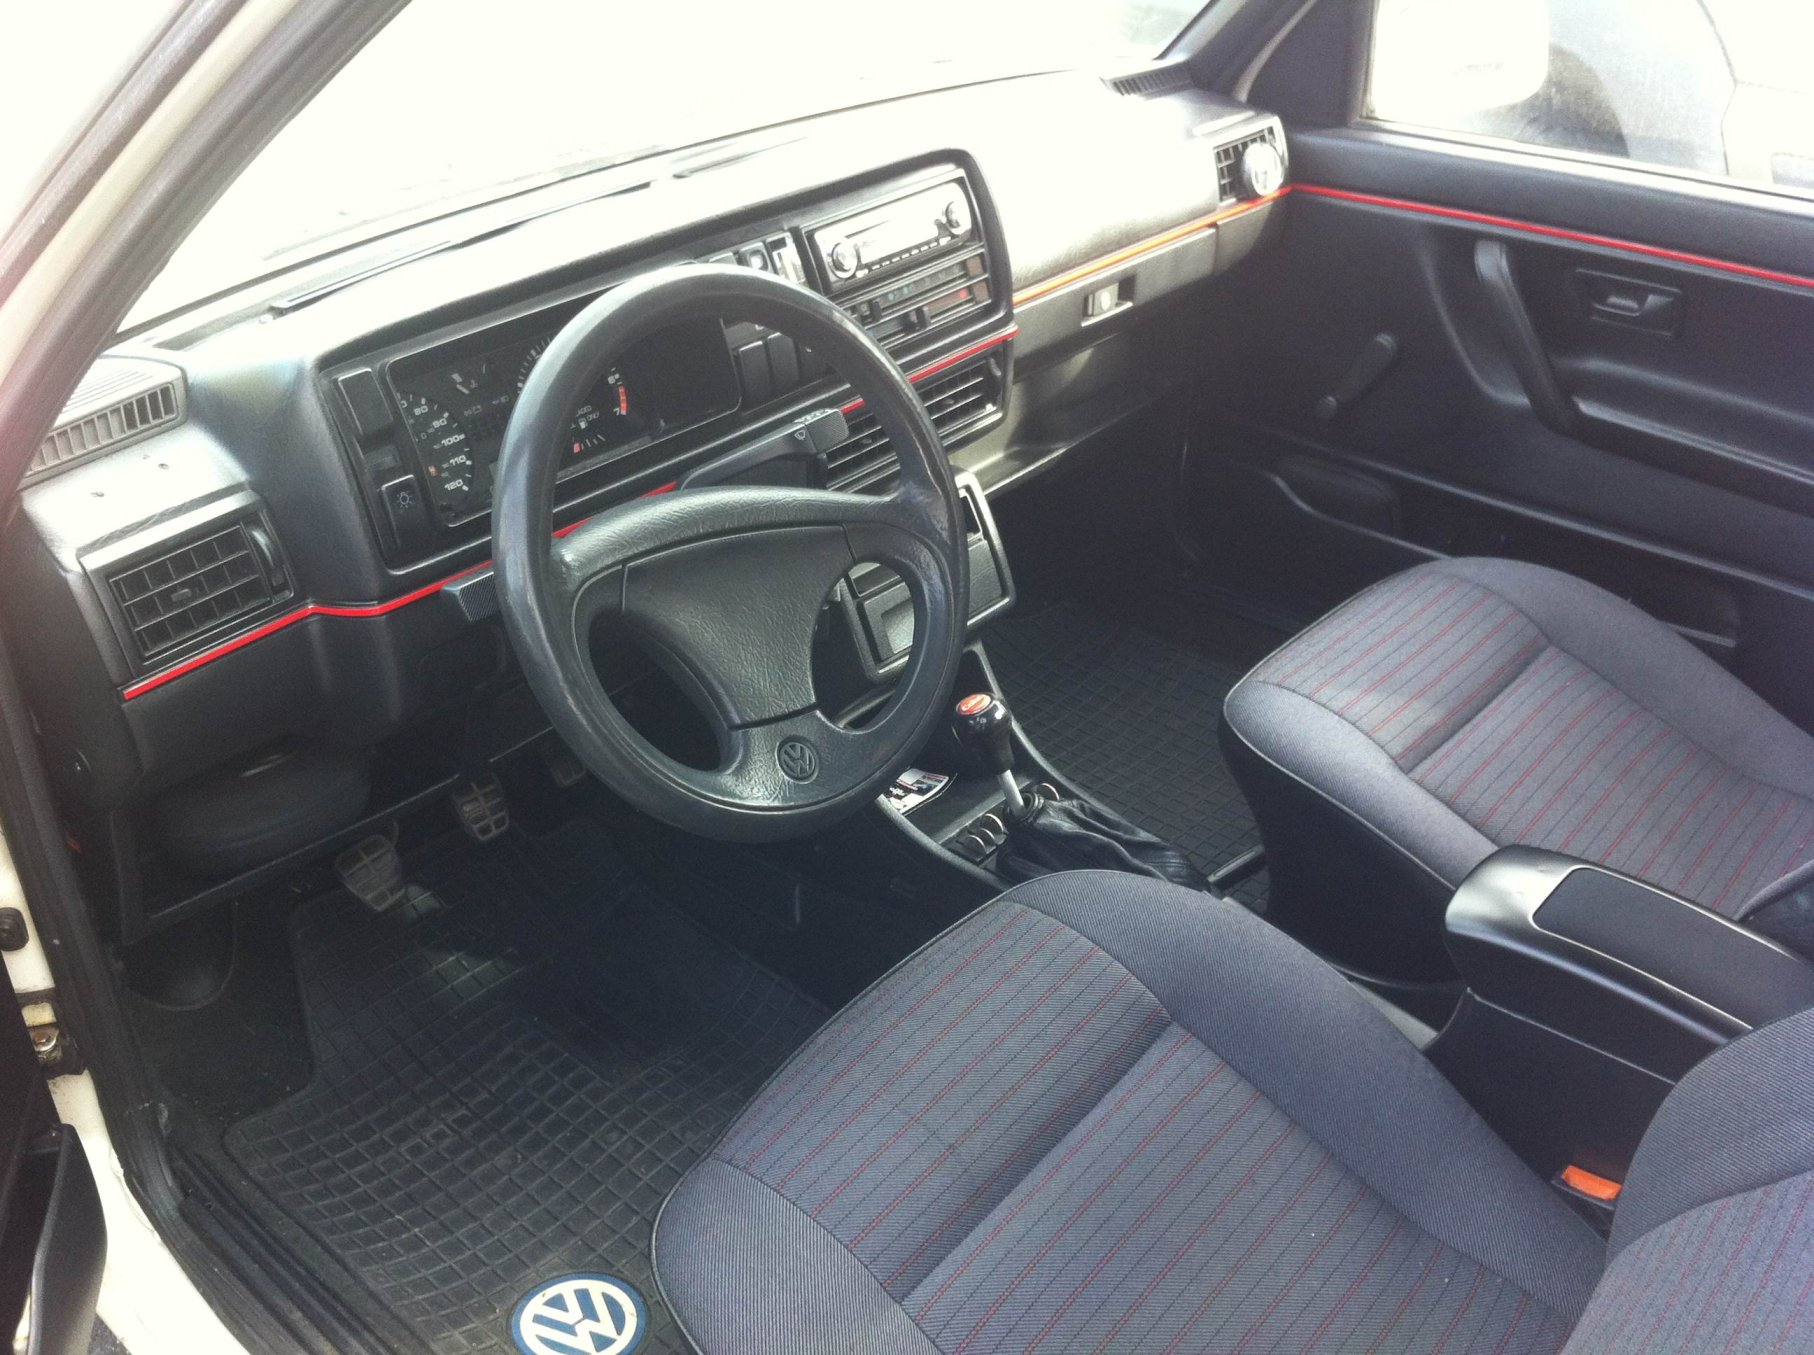 Rubber floor mats vw golf - I Had Mk3 Heavy Duty Rubber Floor Mats In My Mk2 Golf They Fit Pretty Well Didn T Slide At All And Were A Breeze To Clean